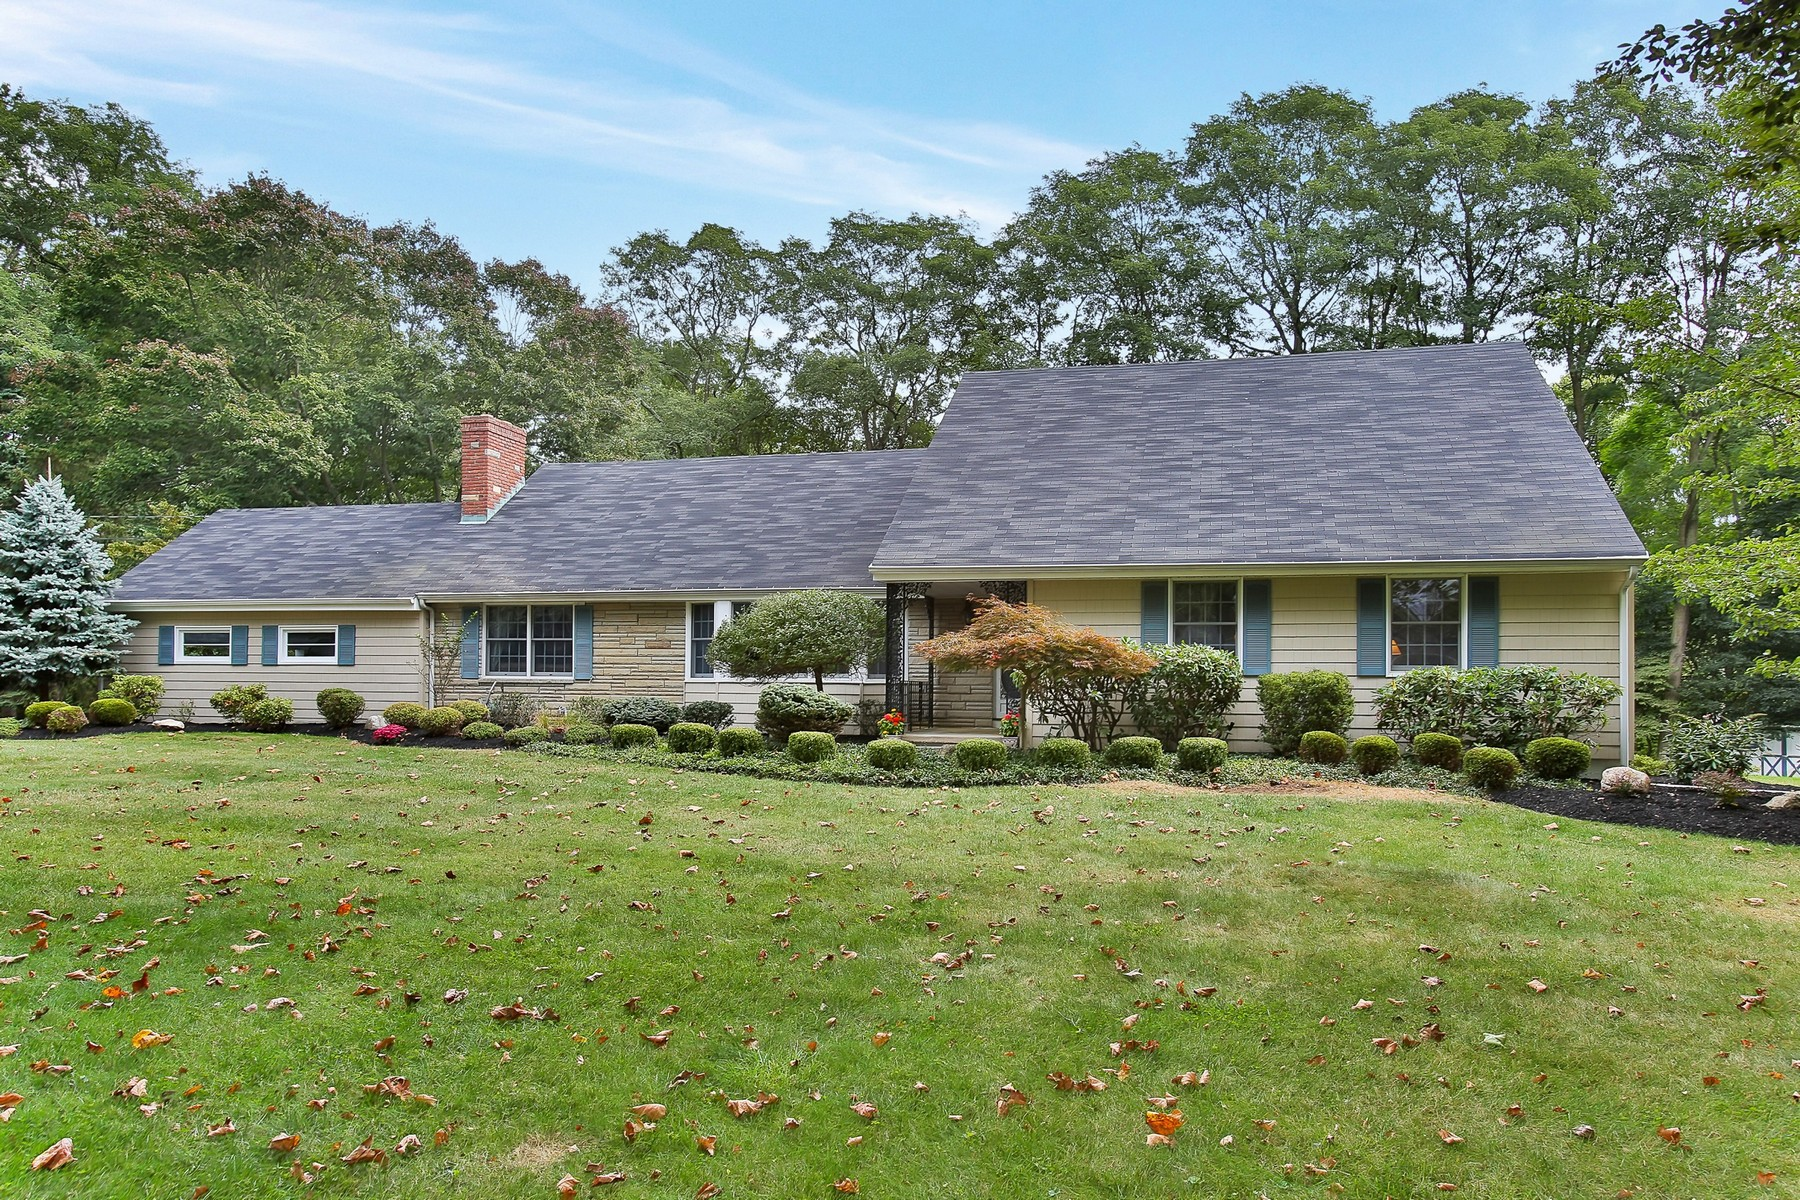 Single Family Home for Sale at In The Heart of Clover Hill 16 Tulip Lane Colts Neck, New Jersey 07722 United States